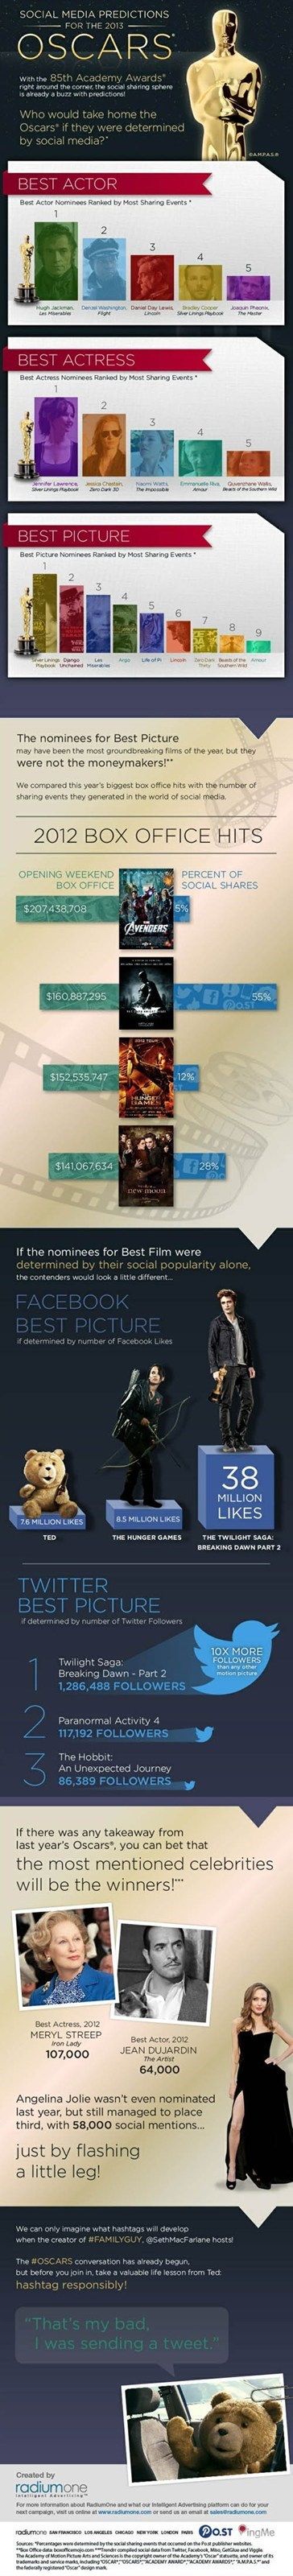 academy awards infographic oscars - 7085601024